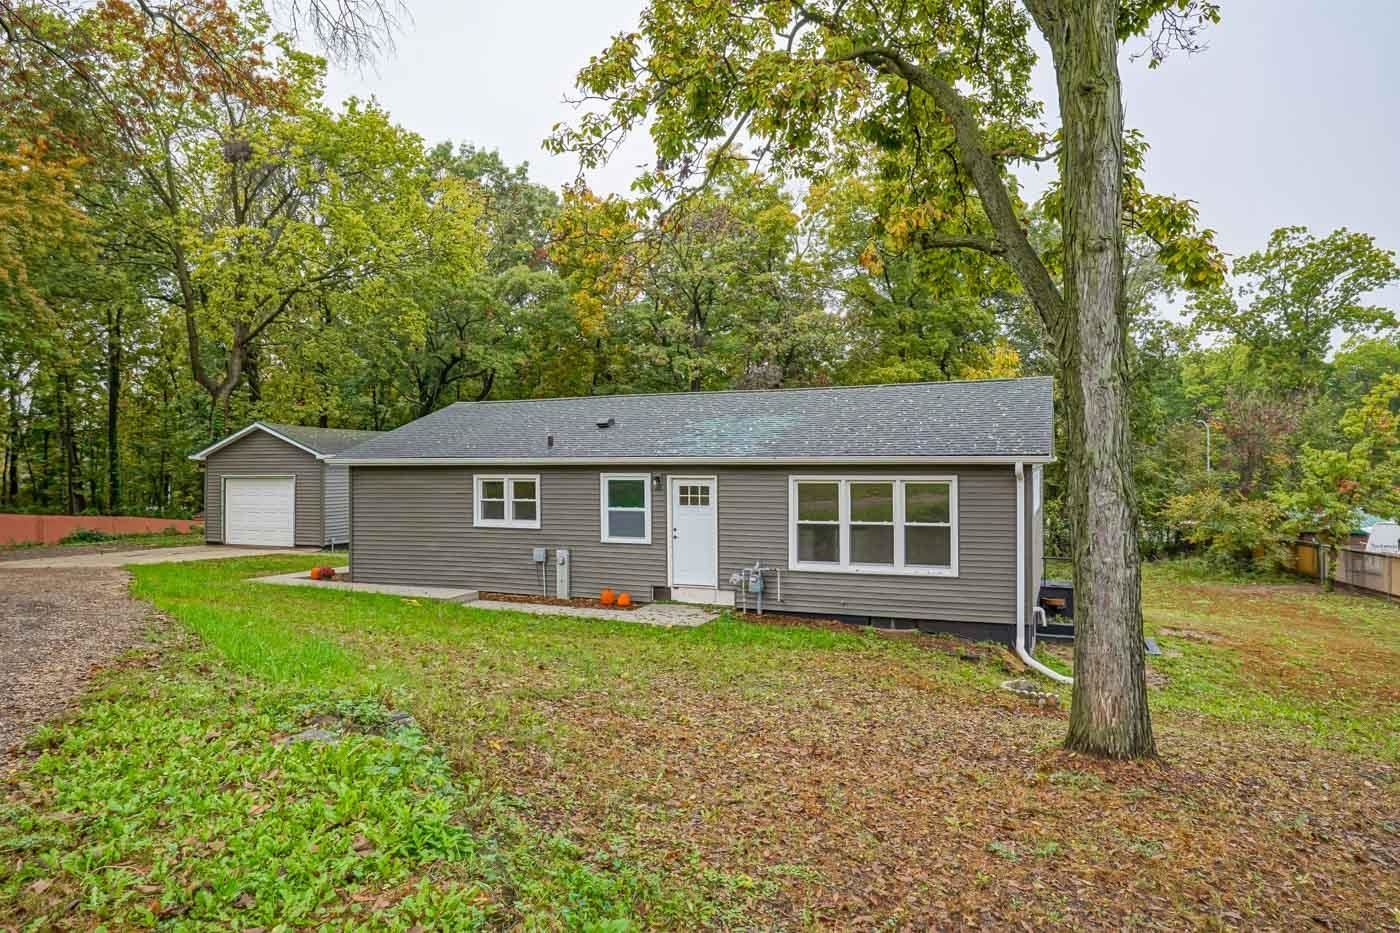 Photo for 2855 Glacier Valley Rd, Fitchburg, WI 53711 (MLS # 1921602)